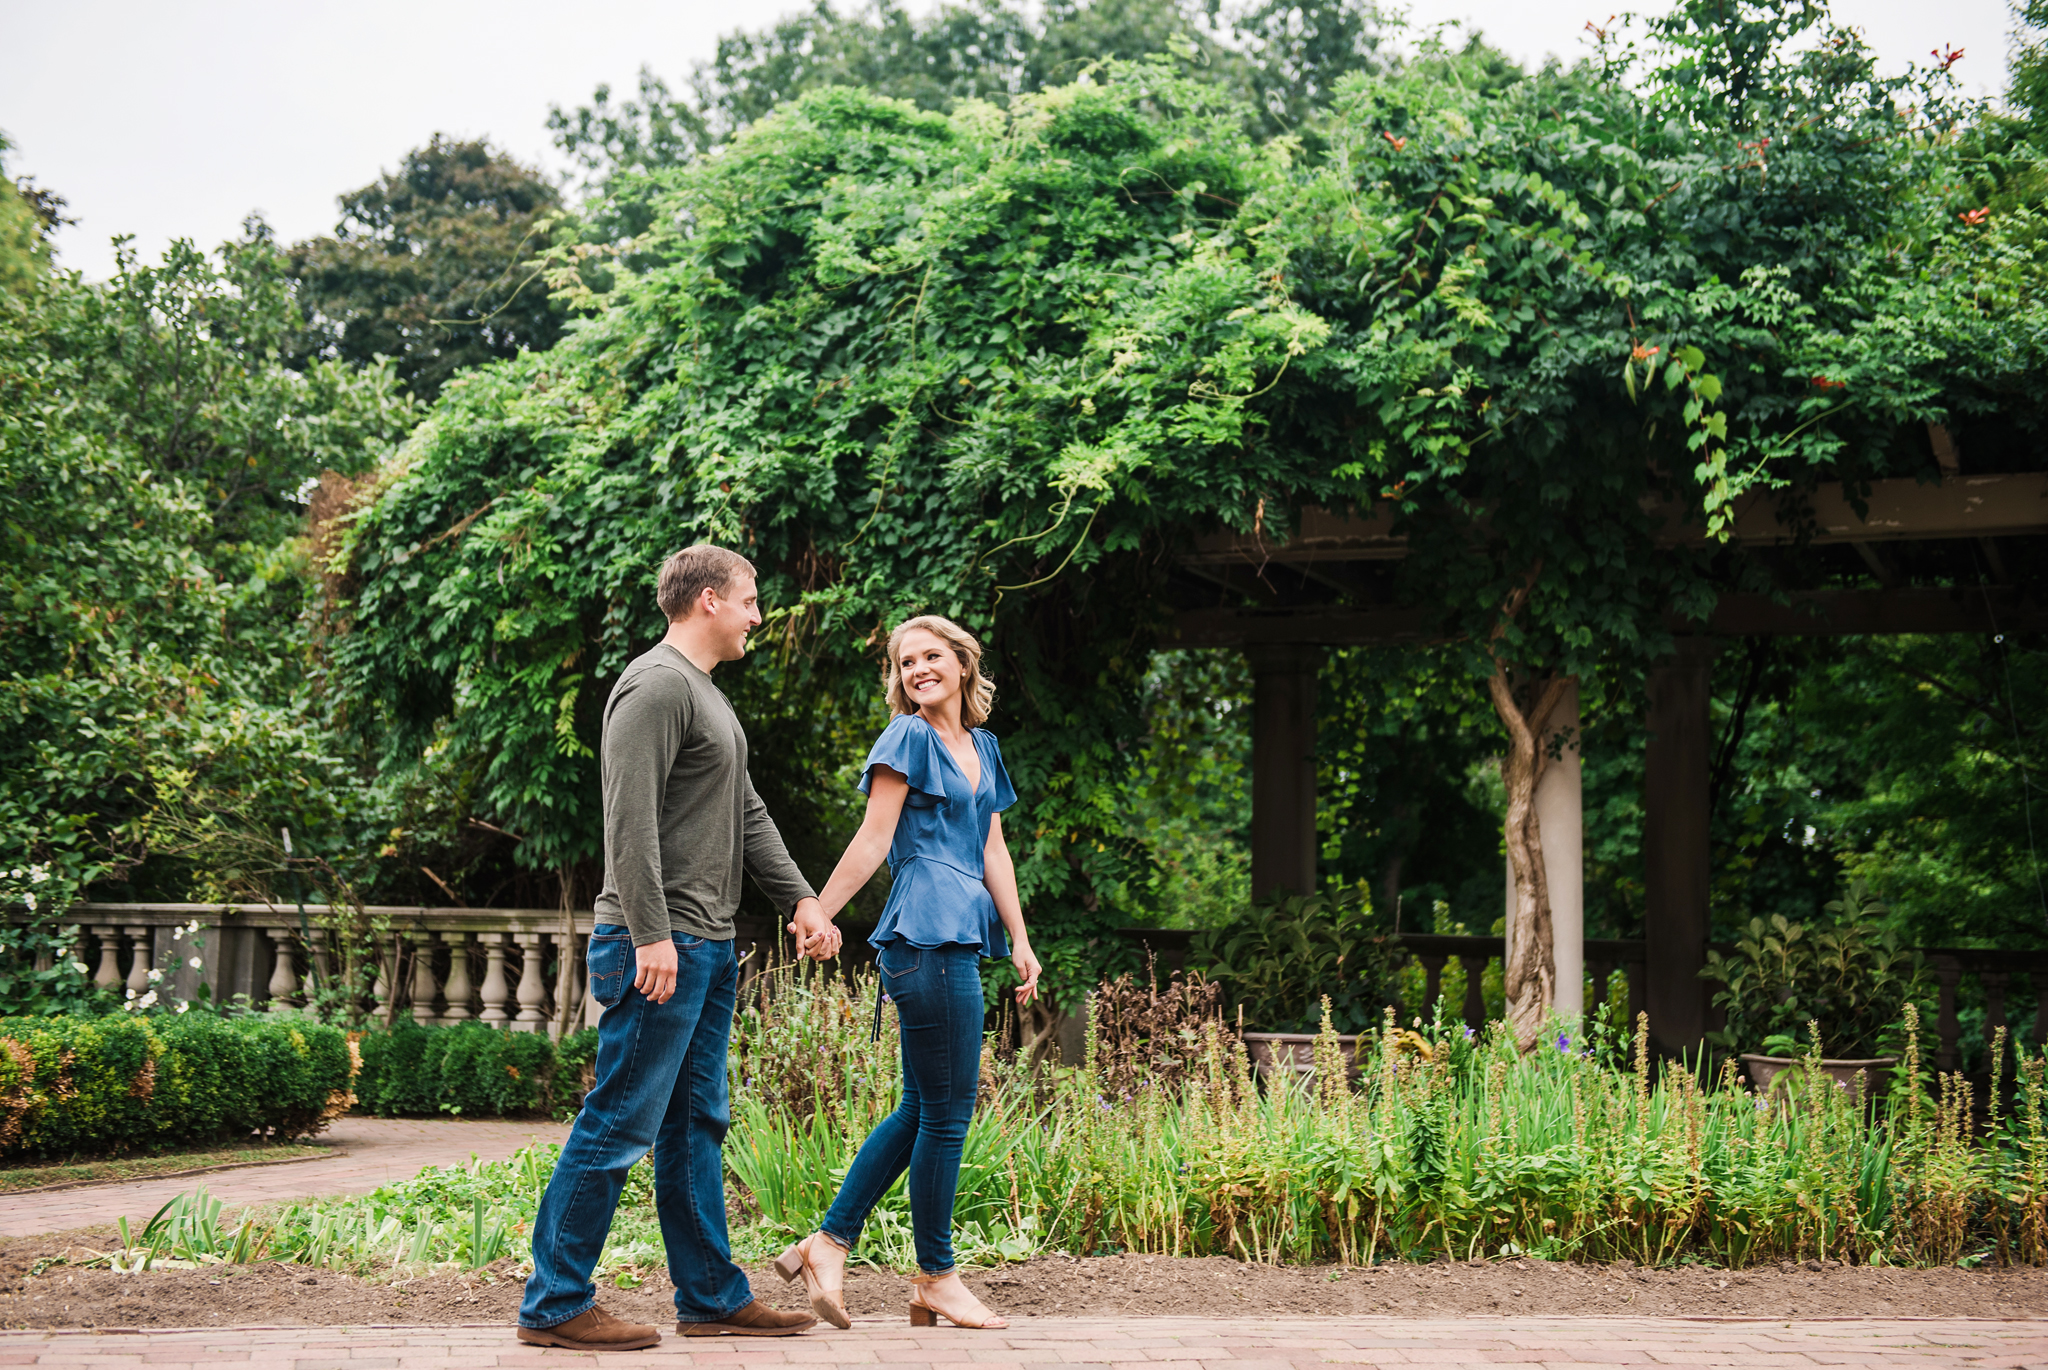 George_Eastman_House_Rochester_Yacht_Club_Rochester_Engagement_Session_JILL_STUDIO_Rochester_NY_Photographer_DSC_8090.jpg